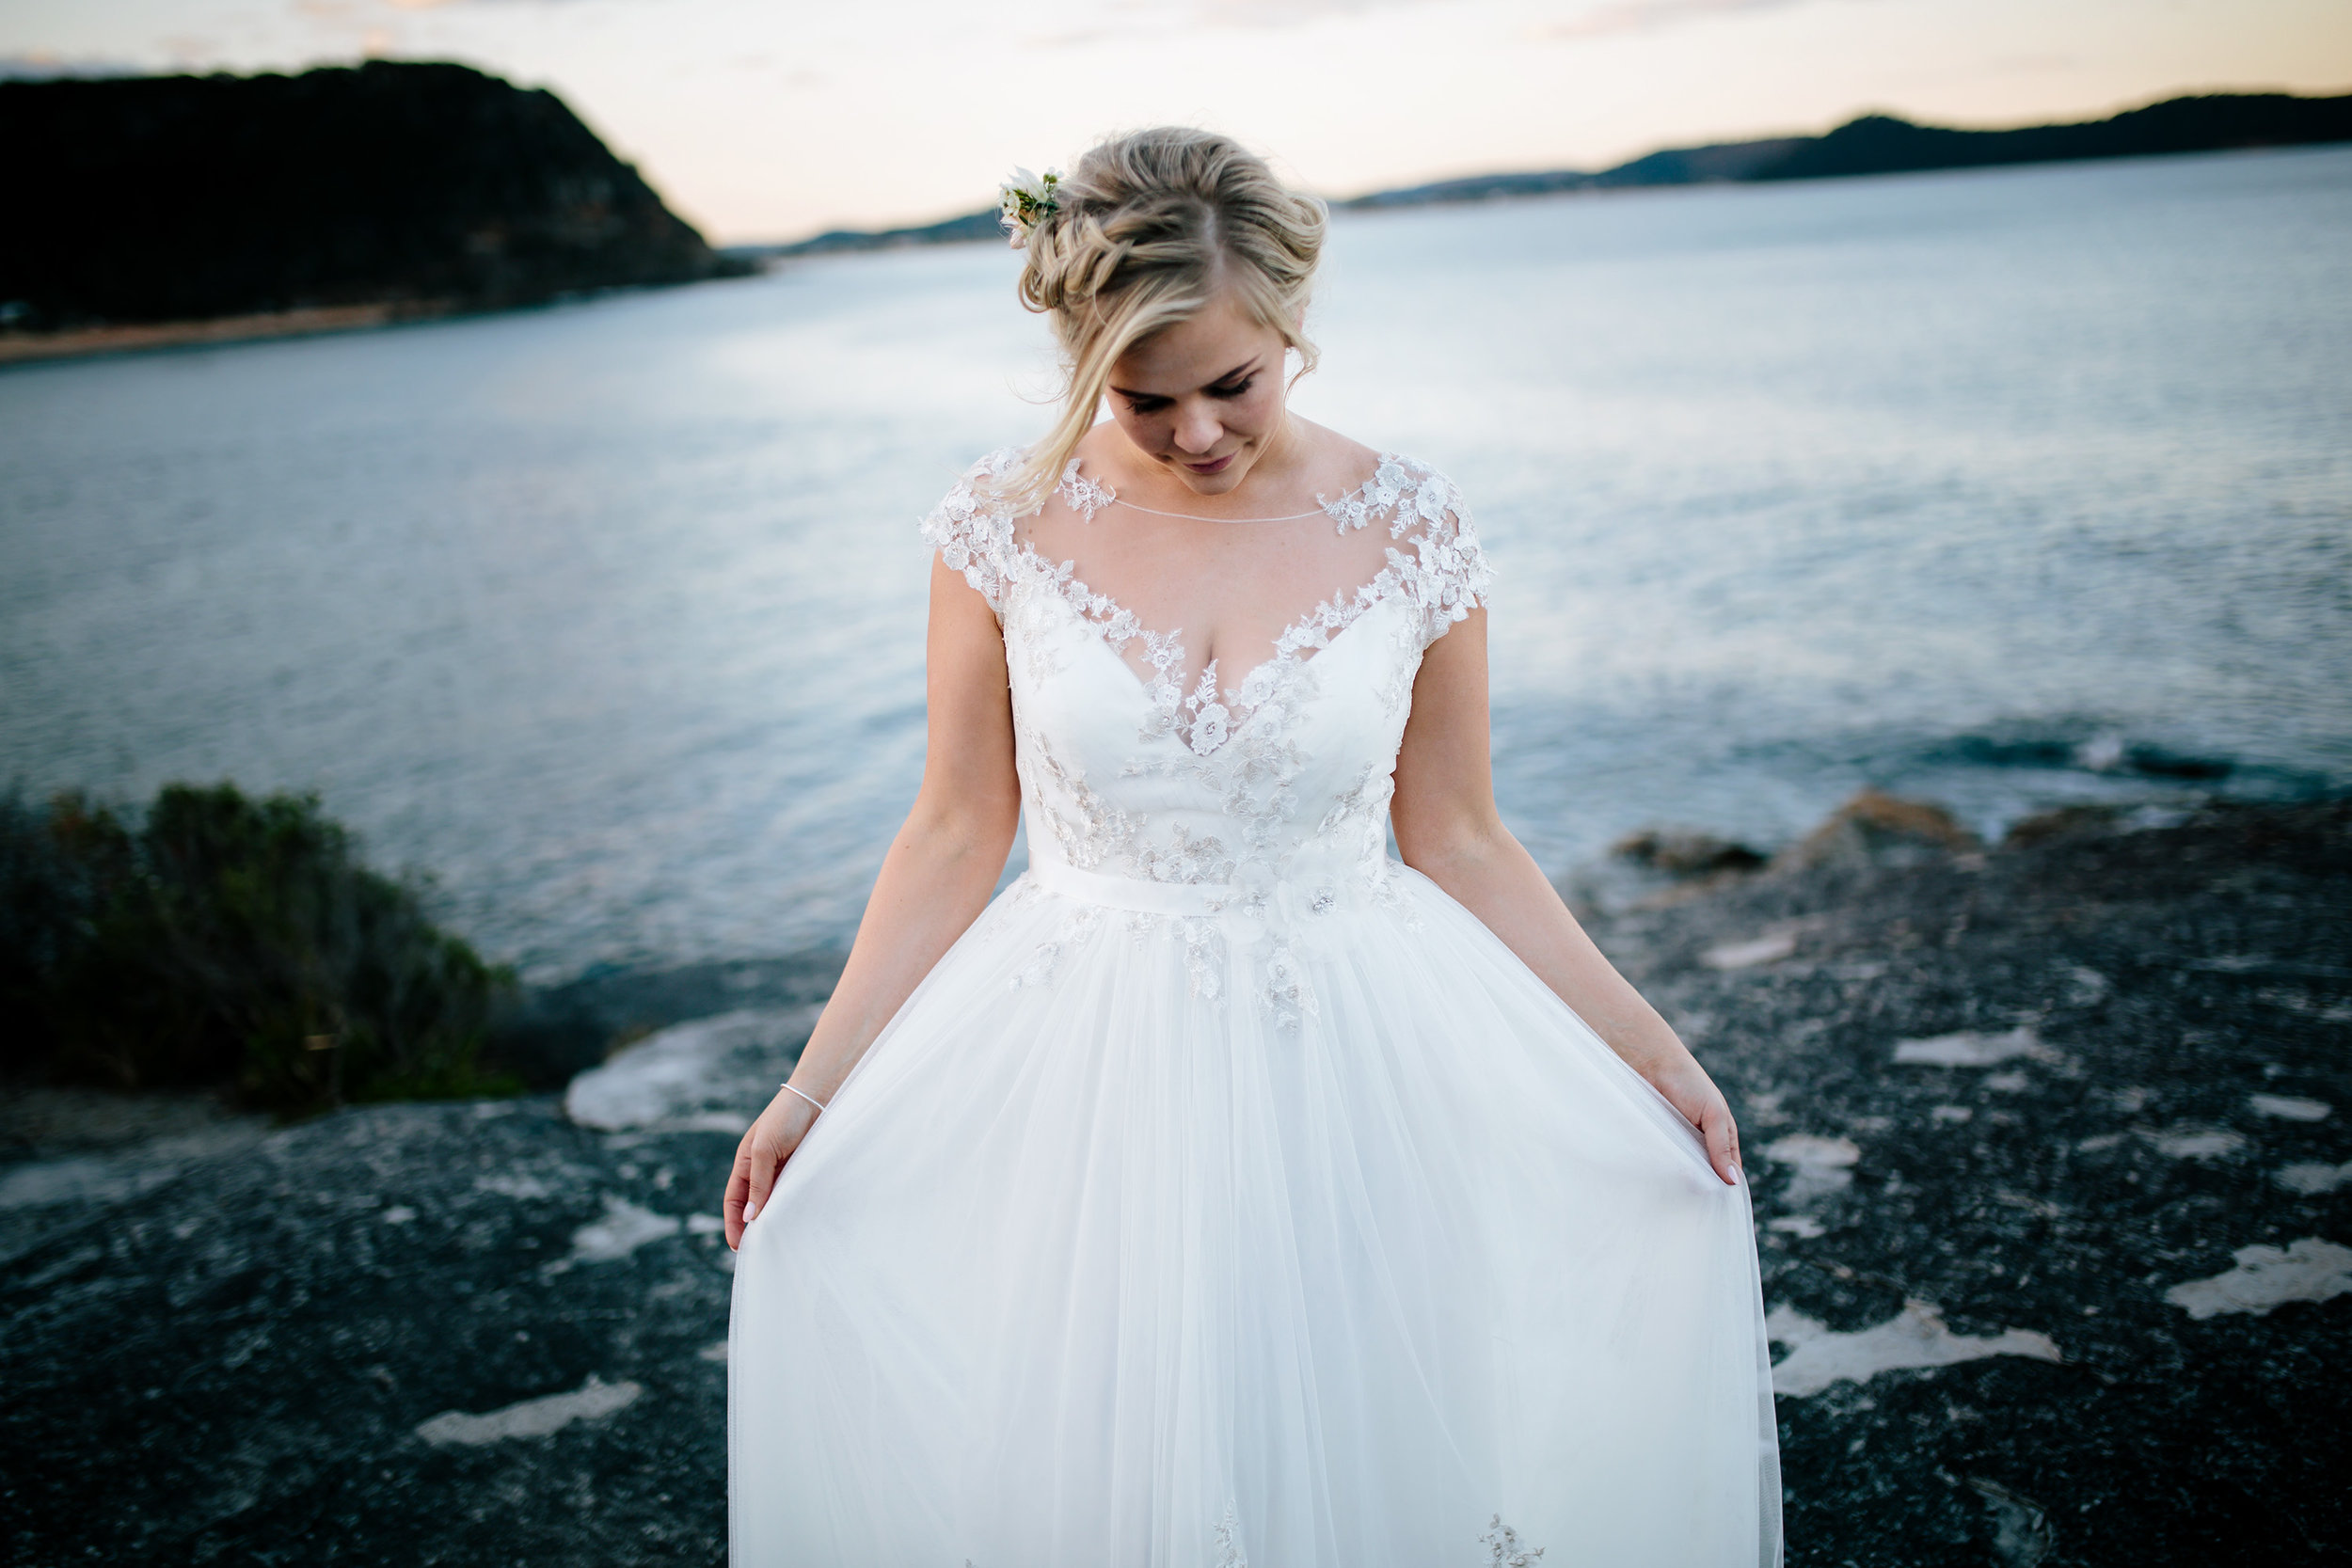 Hills District, Sydney Wedding photography - the dress